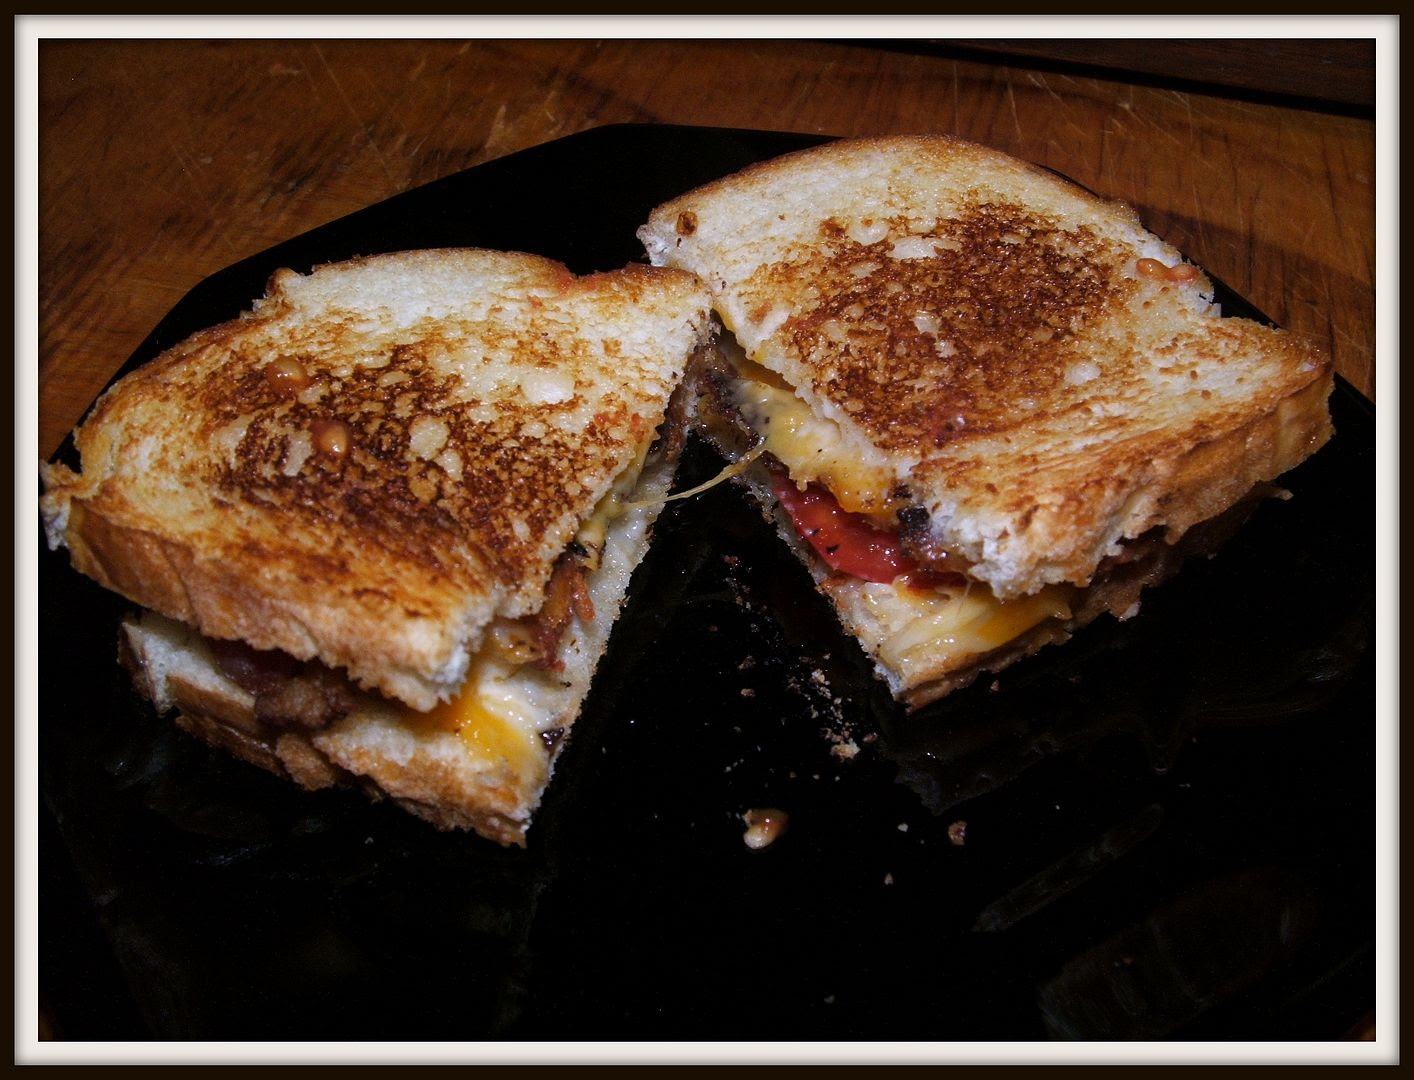 Tomato Bacon Cheese by Angie Ouellette-Tower for godsgrowinggarden.com photo 004_zps4e702554.jpg